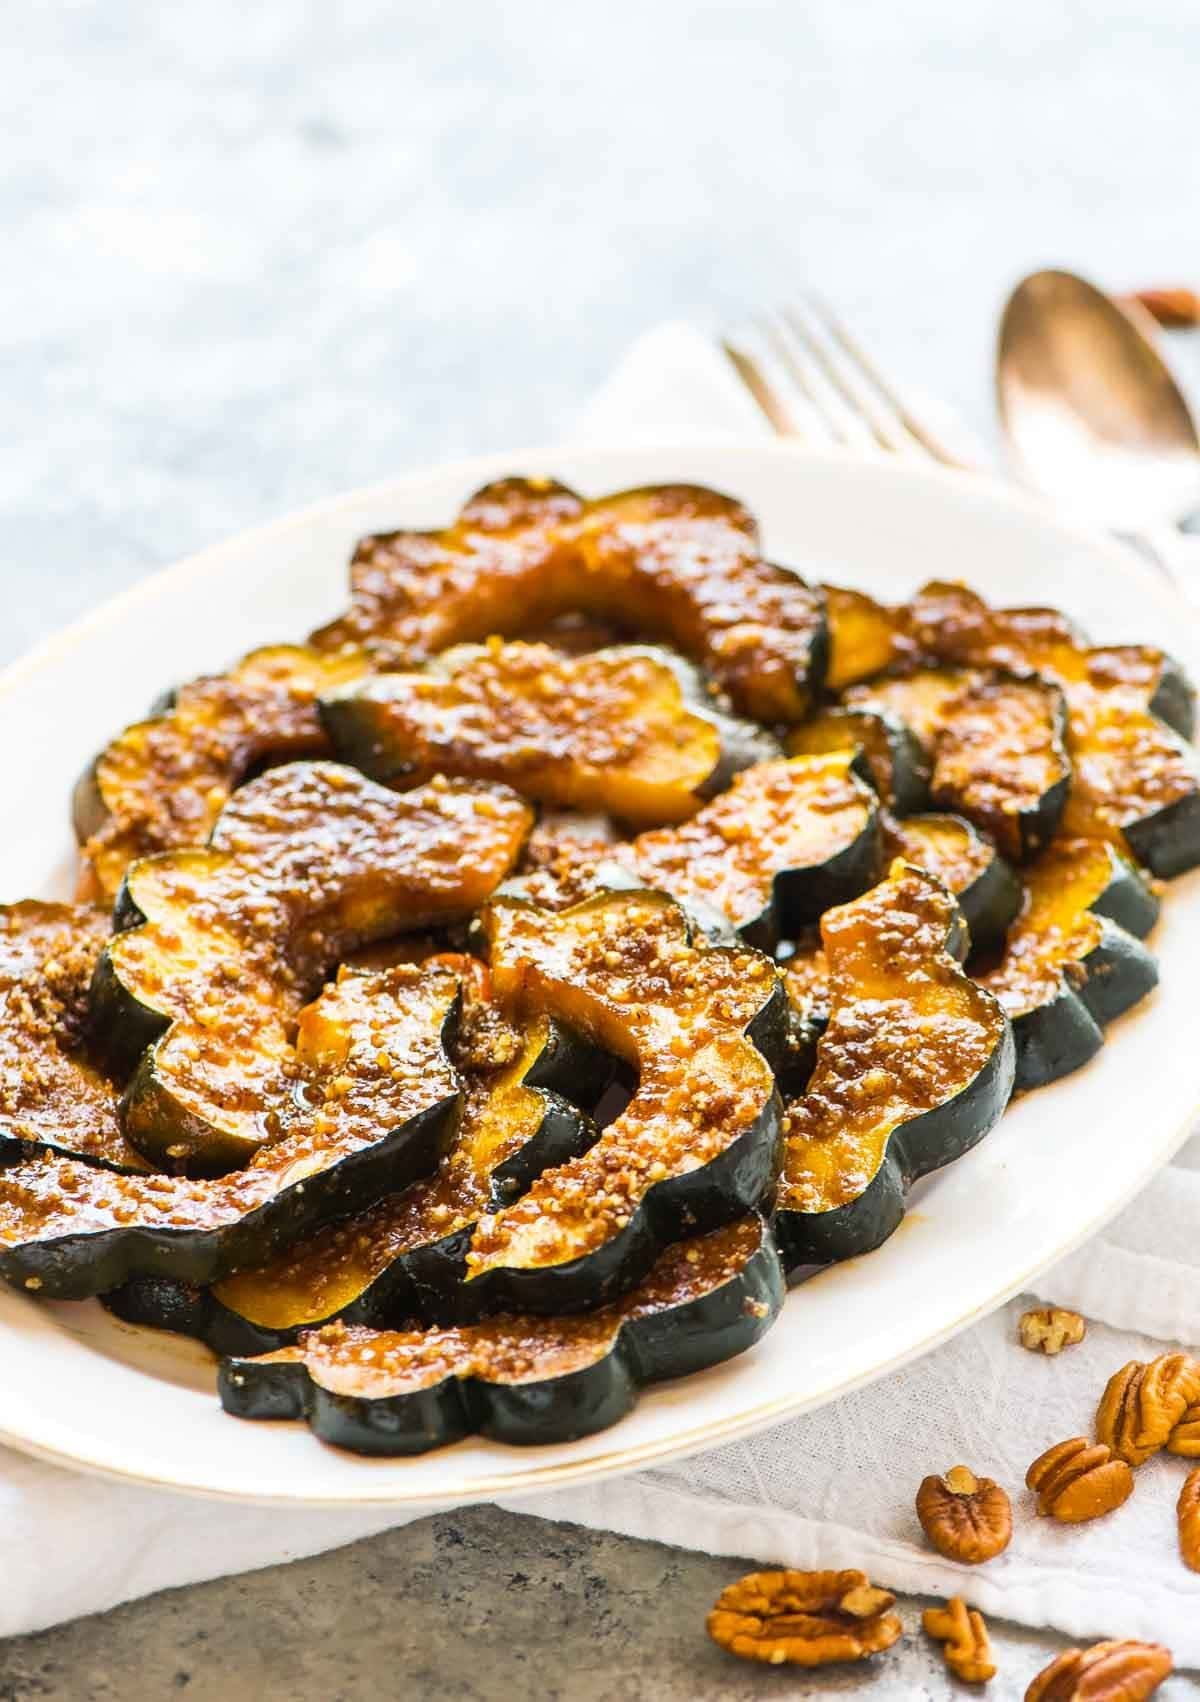 Baked Acorn Squash Slices With Brown Sugar And Pecans Less Than